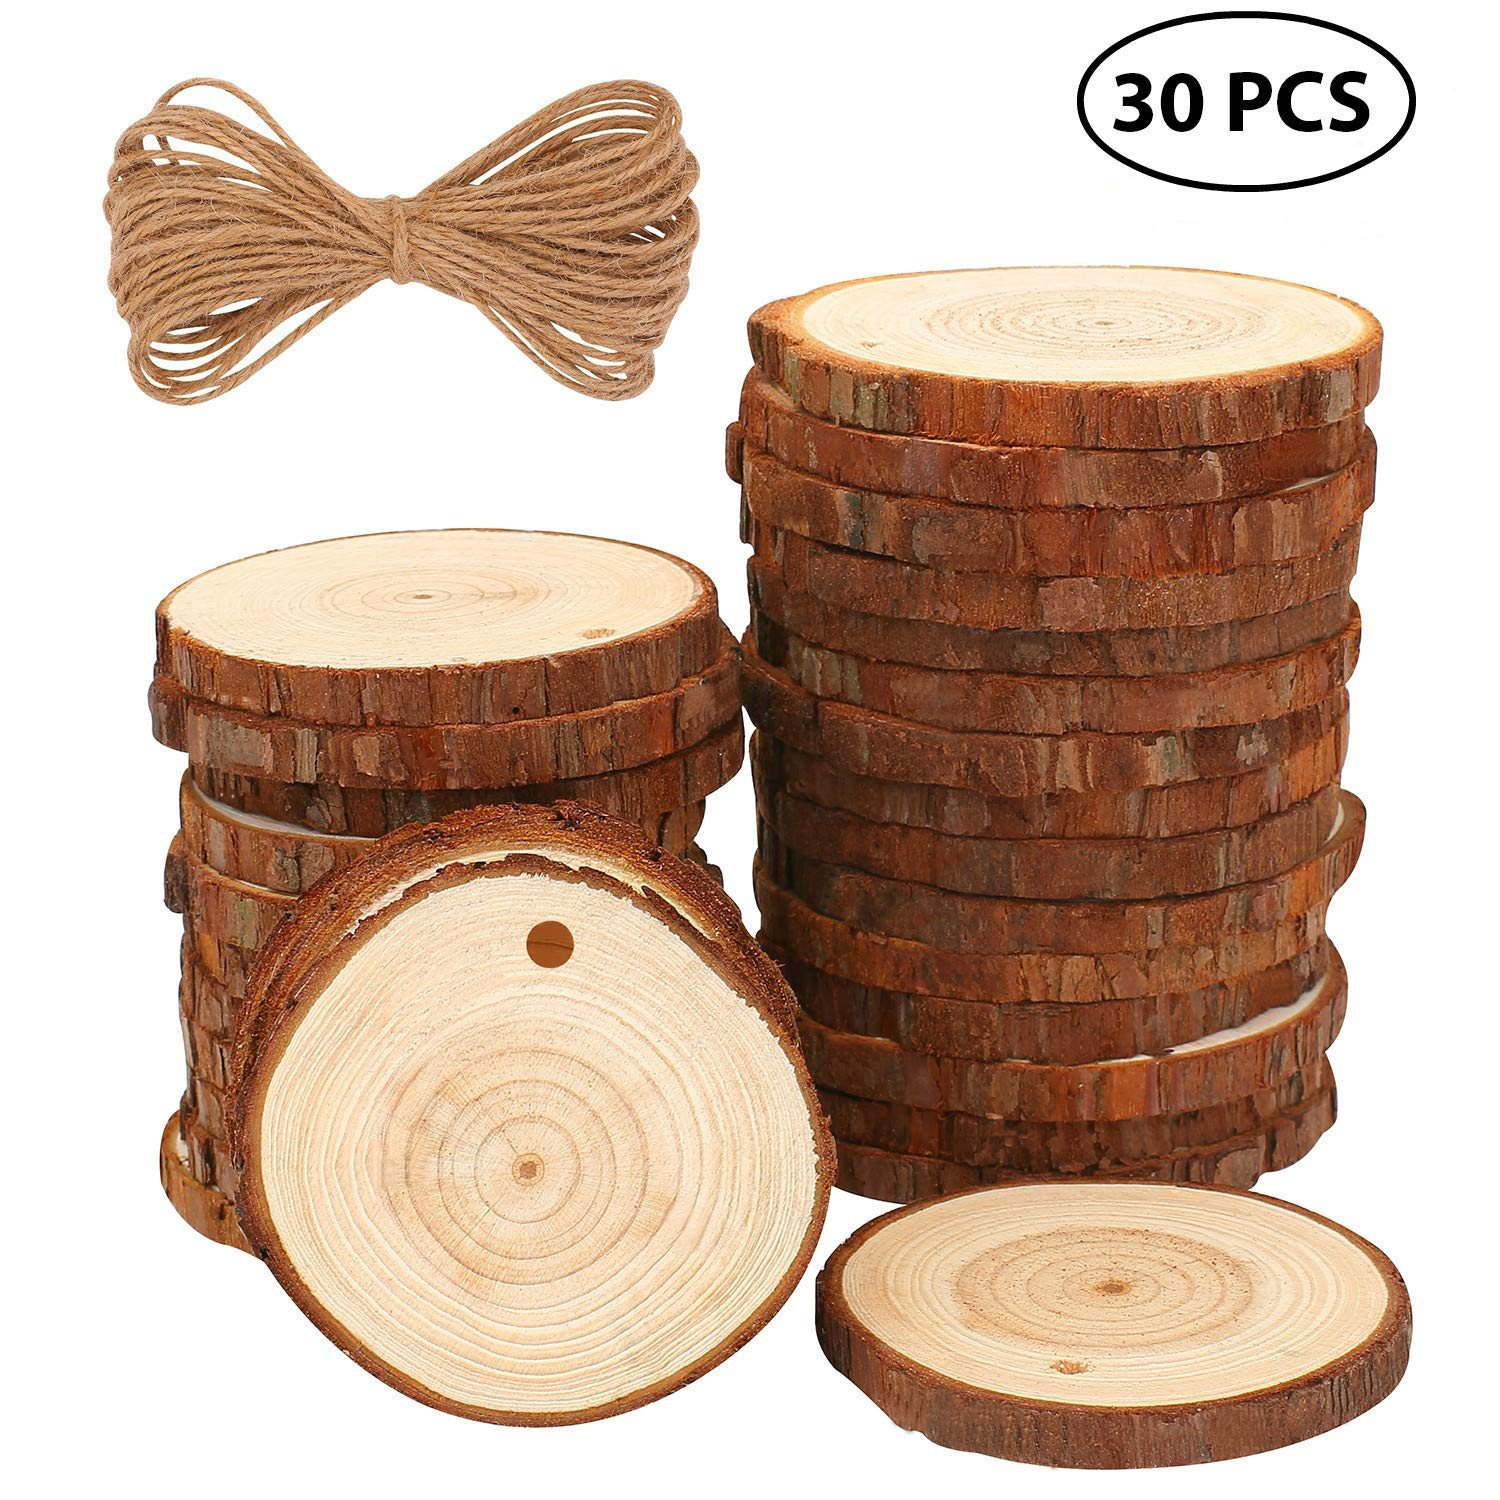 Natural Wood Slices 30 Pcs 2.4''-2.8'' Craft Wood kit Unfinished Predrilled with Hole Wooden Circles Great for Arts and Crafts Christmas Ornaments DIY Crafts